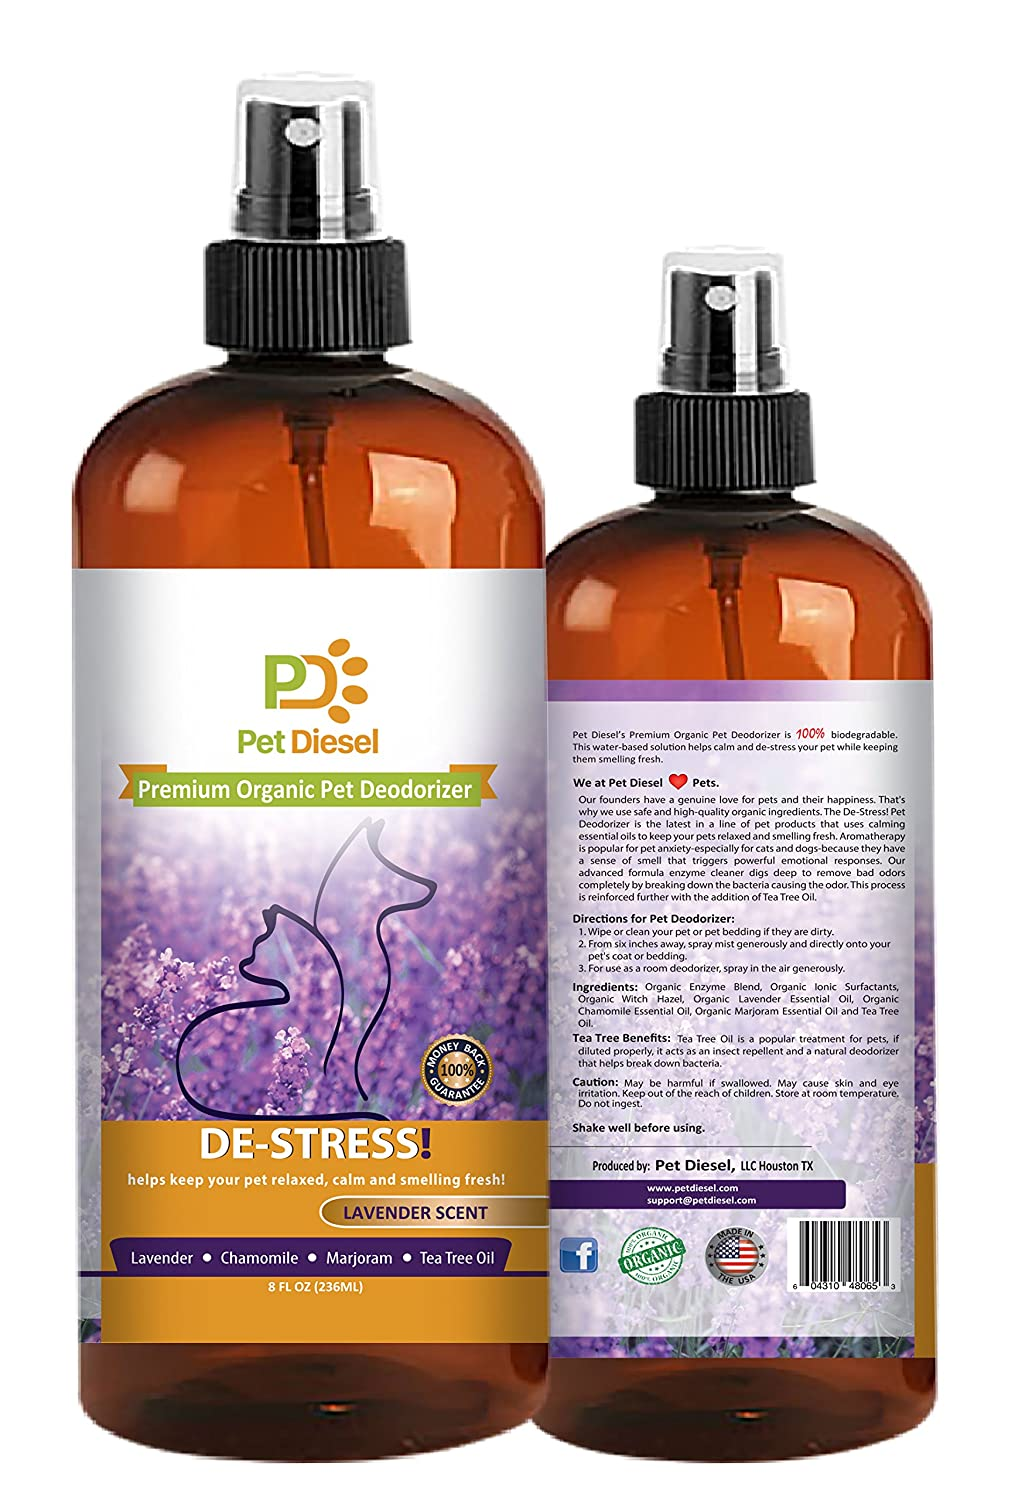 Premium Pet Deodorizer By Pet Diesel | Pet Cologne | Pet Perfume| Organic Deodorant With Enzyme, Lavender, Majoram & Chamomile Scent | For Odor Elimination & Bacteria Removal | For Dogs, Cats & More